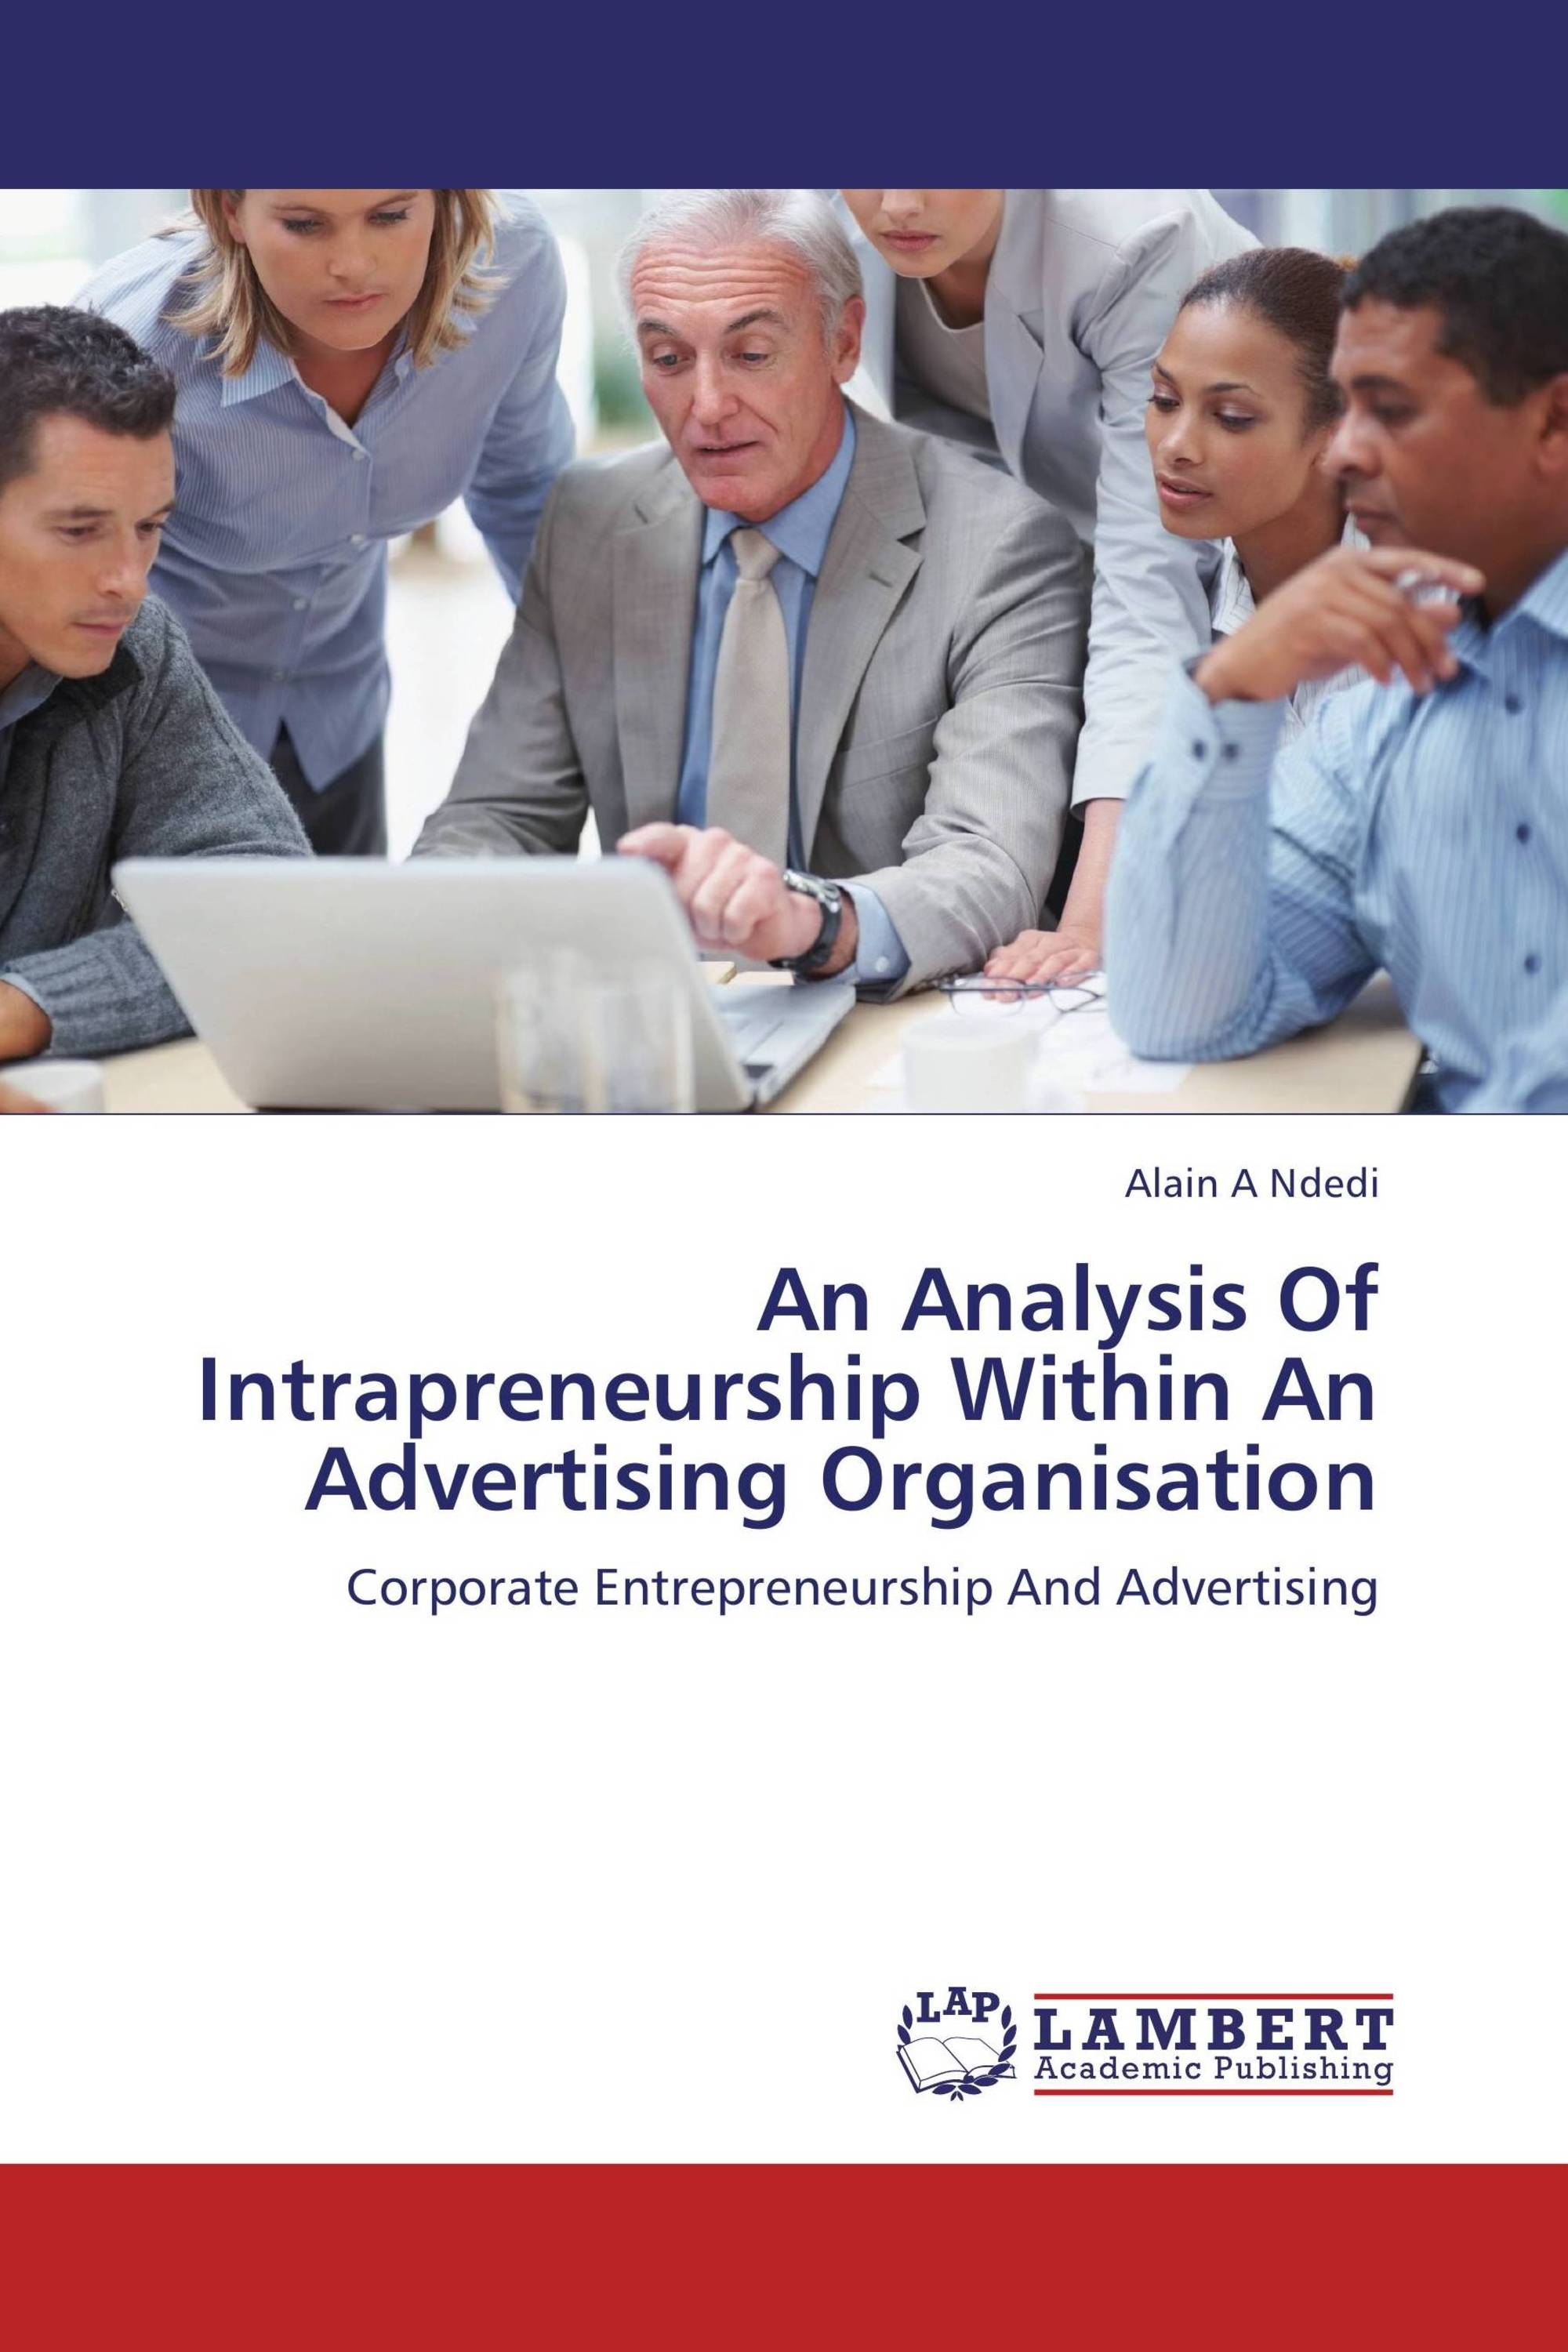 An Analysis Of Intrapreneurship Within An Advertising Organisation